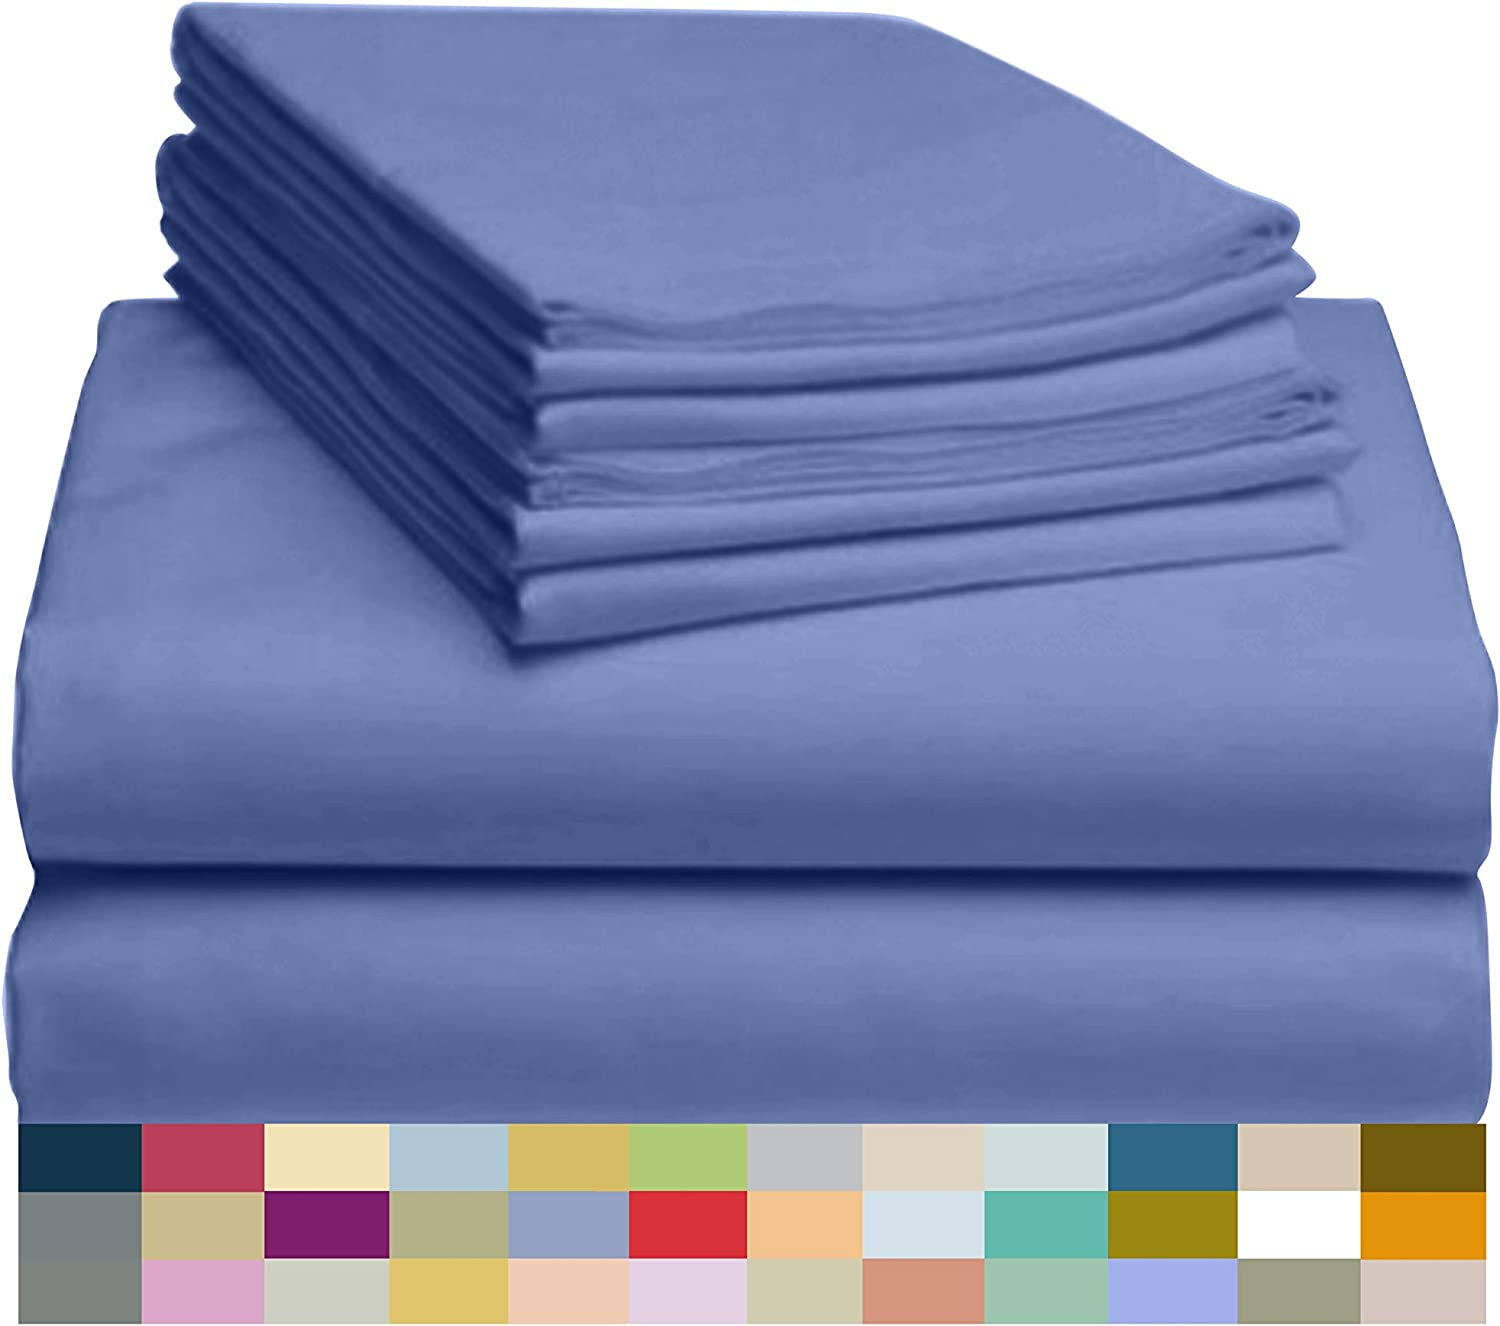 "LuxClub 6 PC Sheet Set Bamboo Sheets Deep Pockets 18"" Eco Friendly Wrinkle Free Sheets Hypoallergenic Anti-Bacteria Machine Washable Hotel Bedding Silky Soft - Violet Blue King"